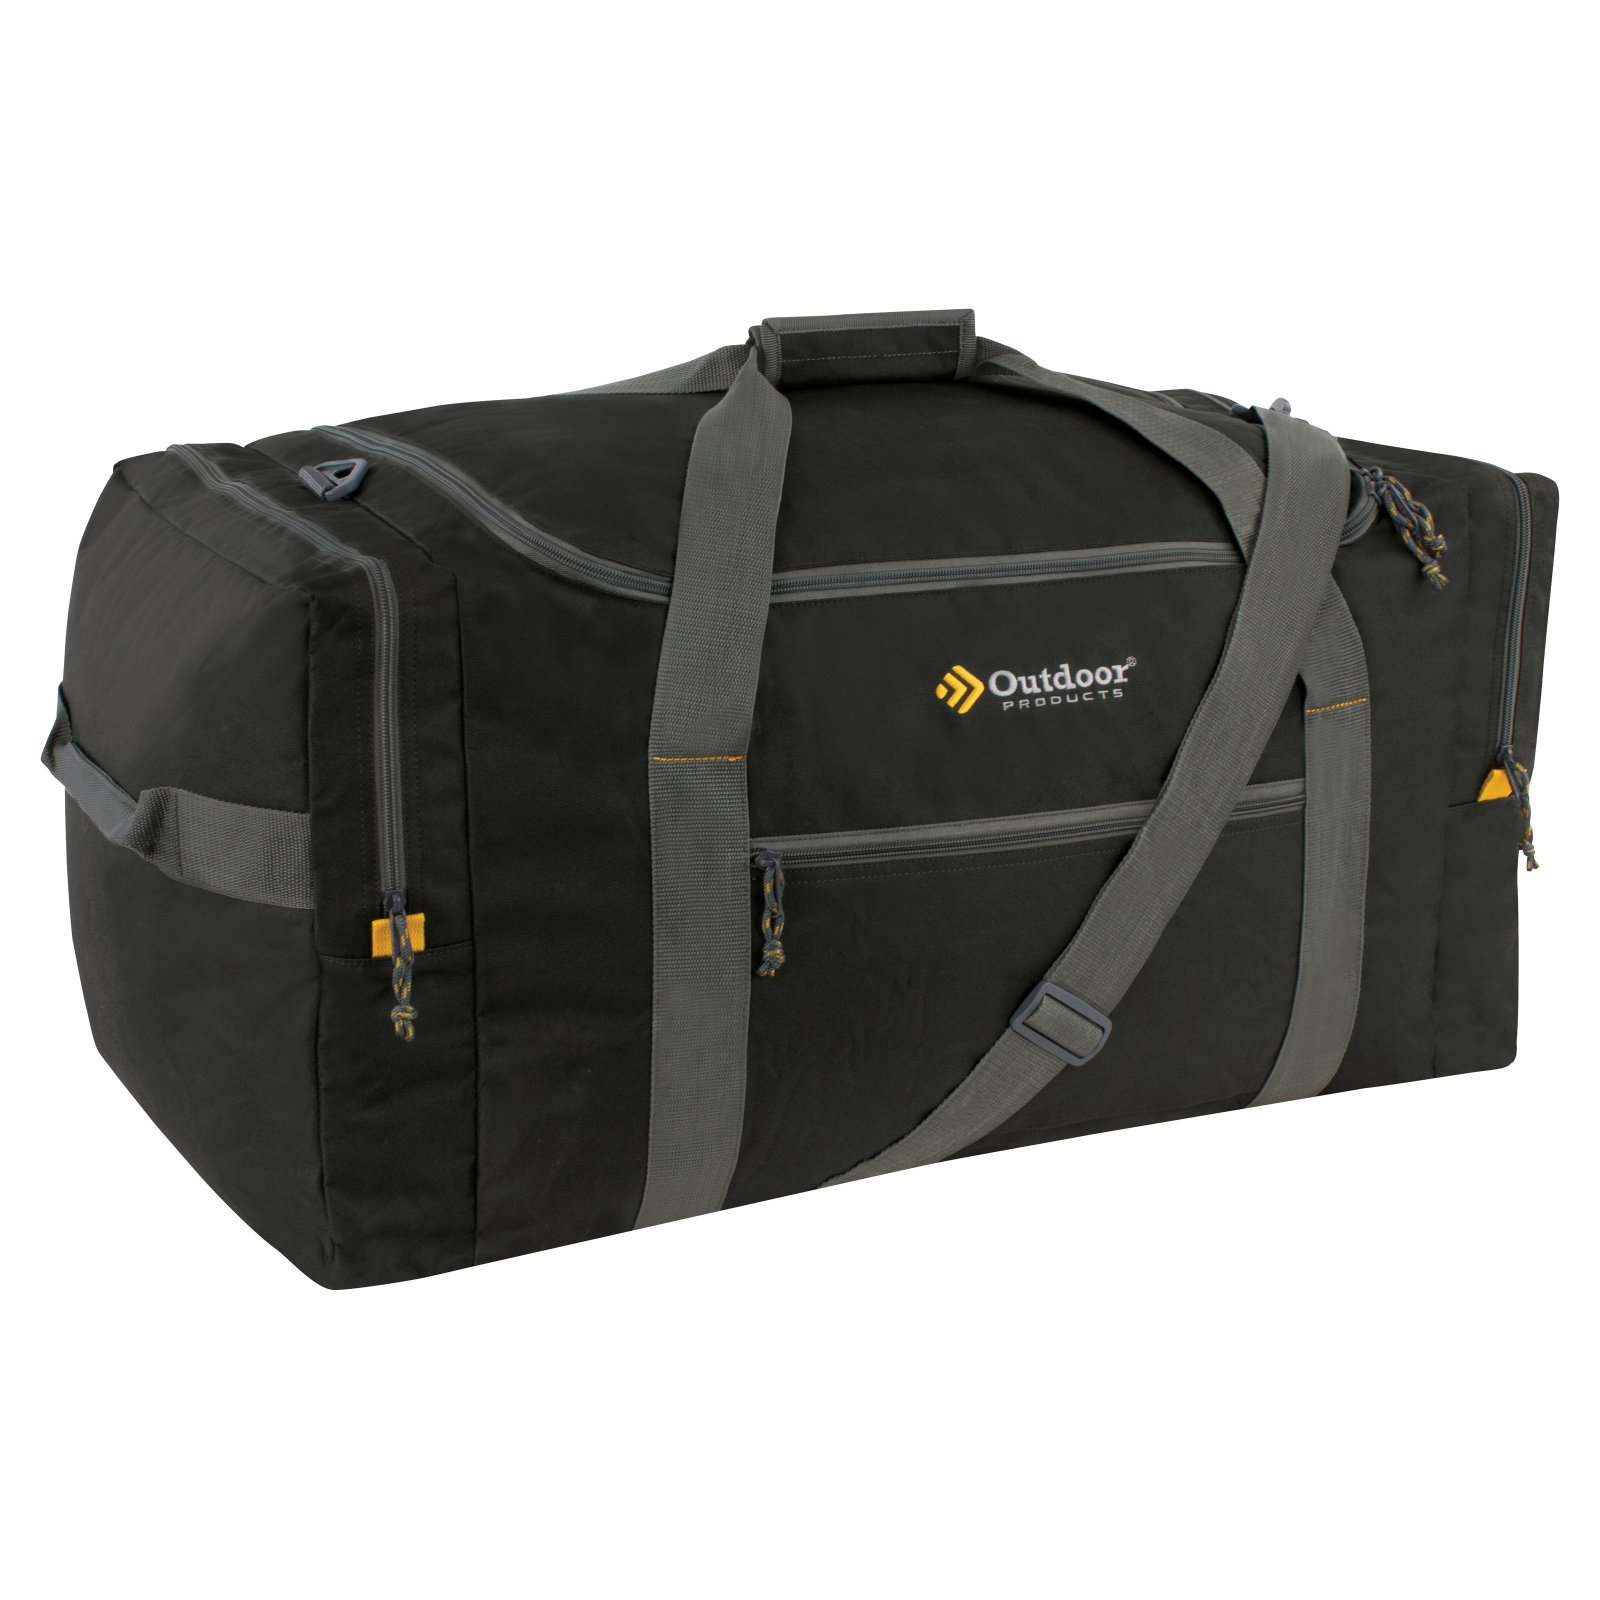 Outdoor Products Mountain Duffle by Outdoor Products